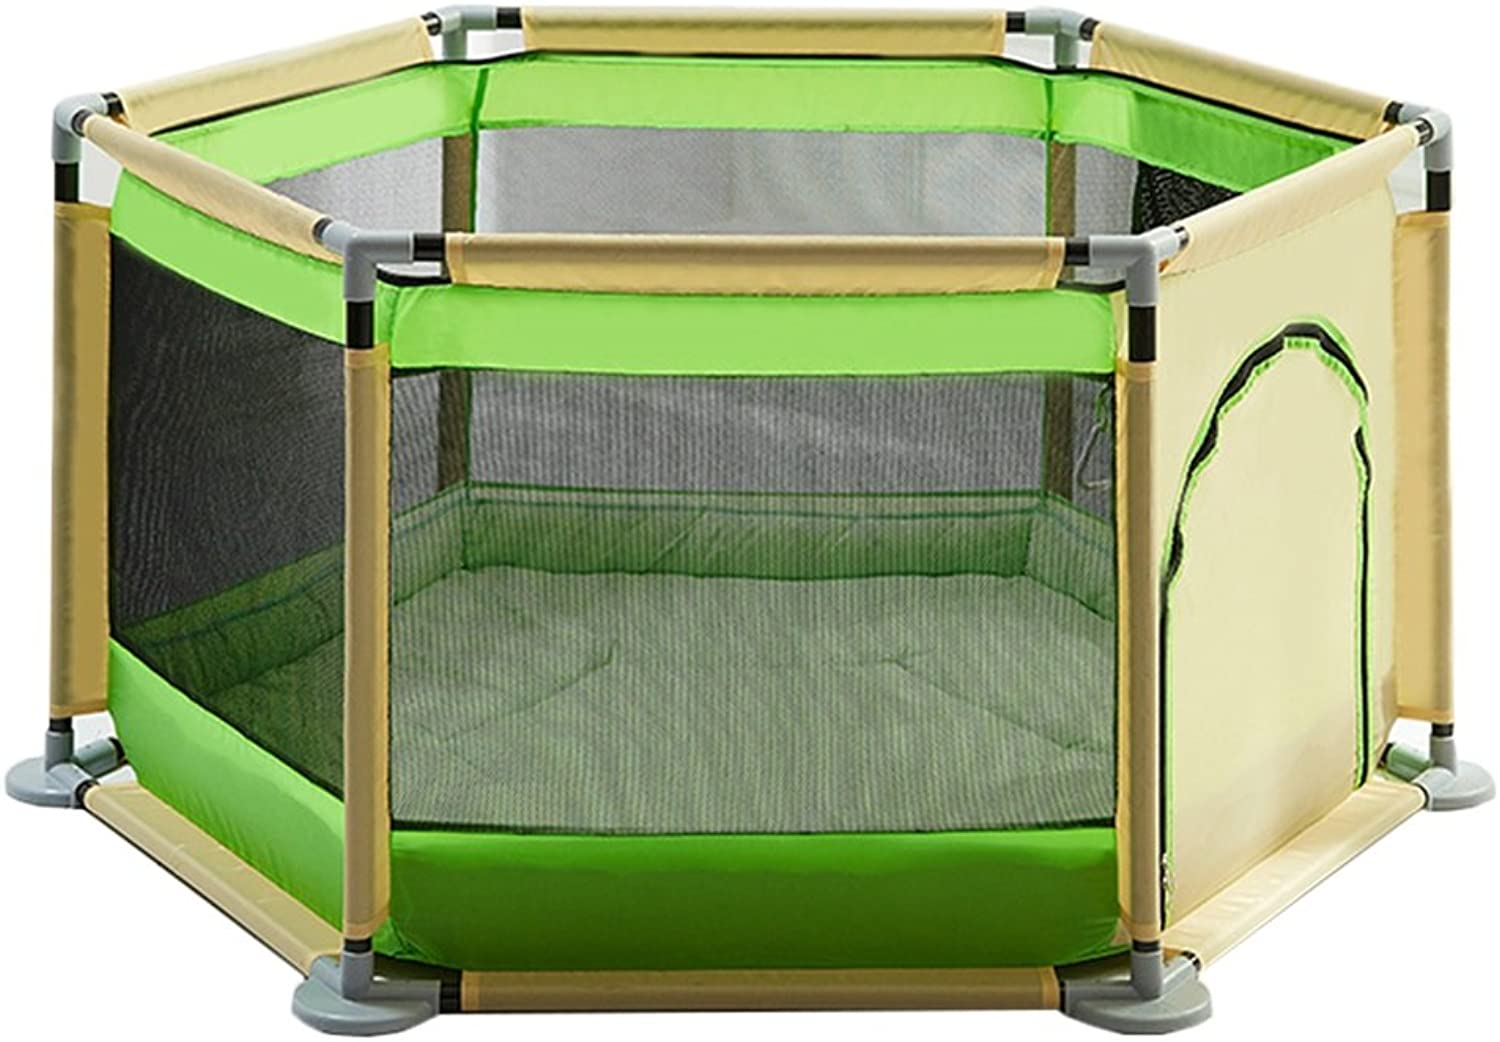 Playpens for toddler playpens for babies playpen baby playpen baby Play Yard Home play fence Playmat Baby Predective Fence (color   Green, Size   140  65cm)